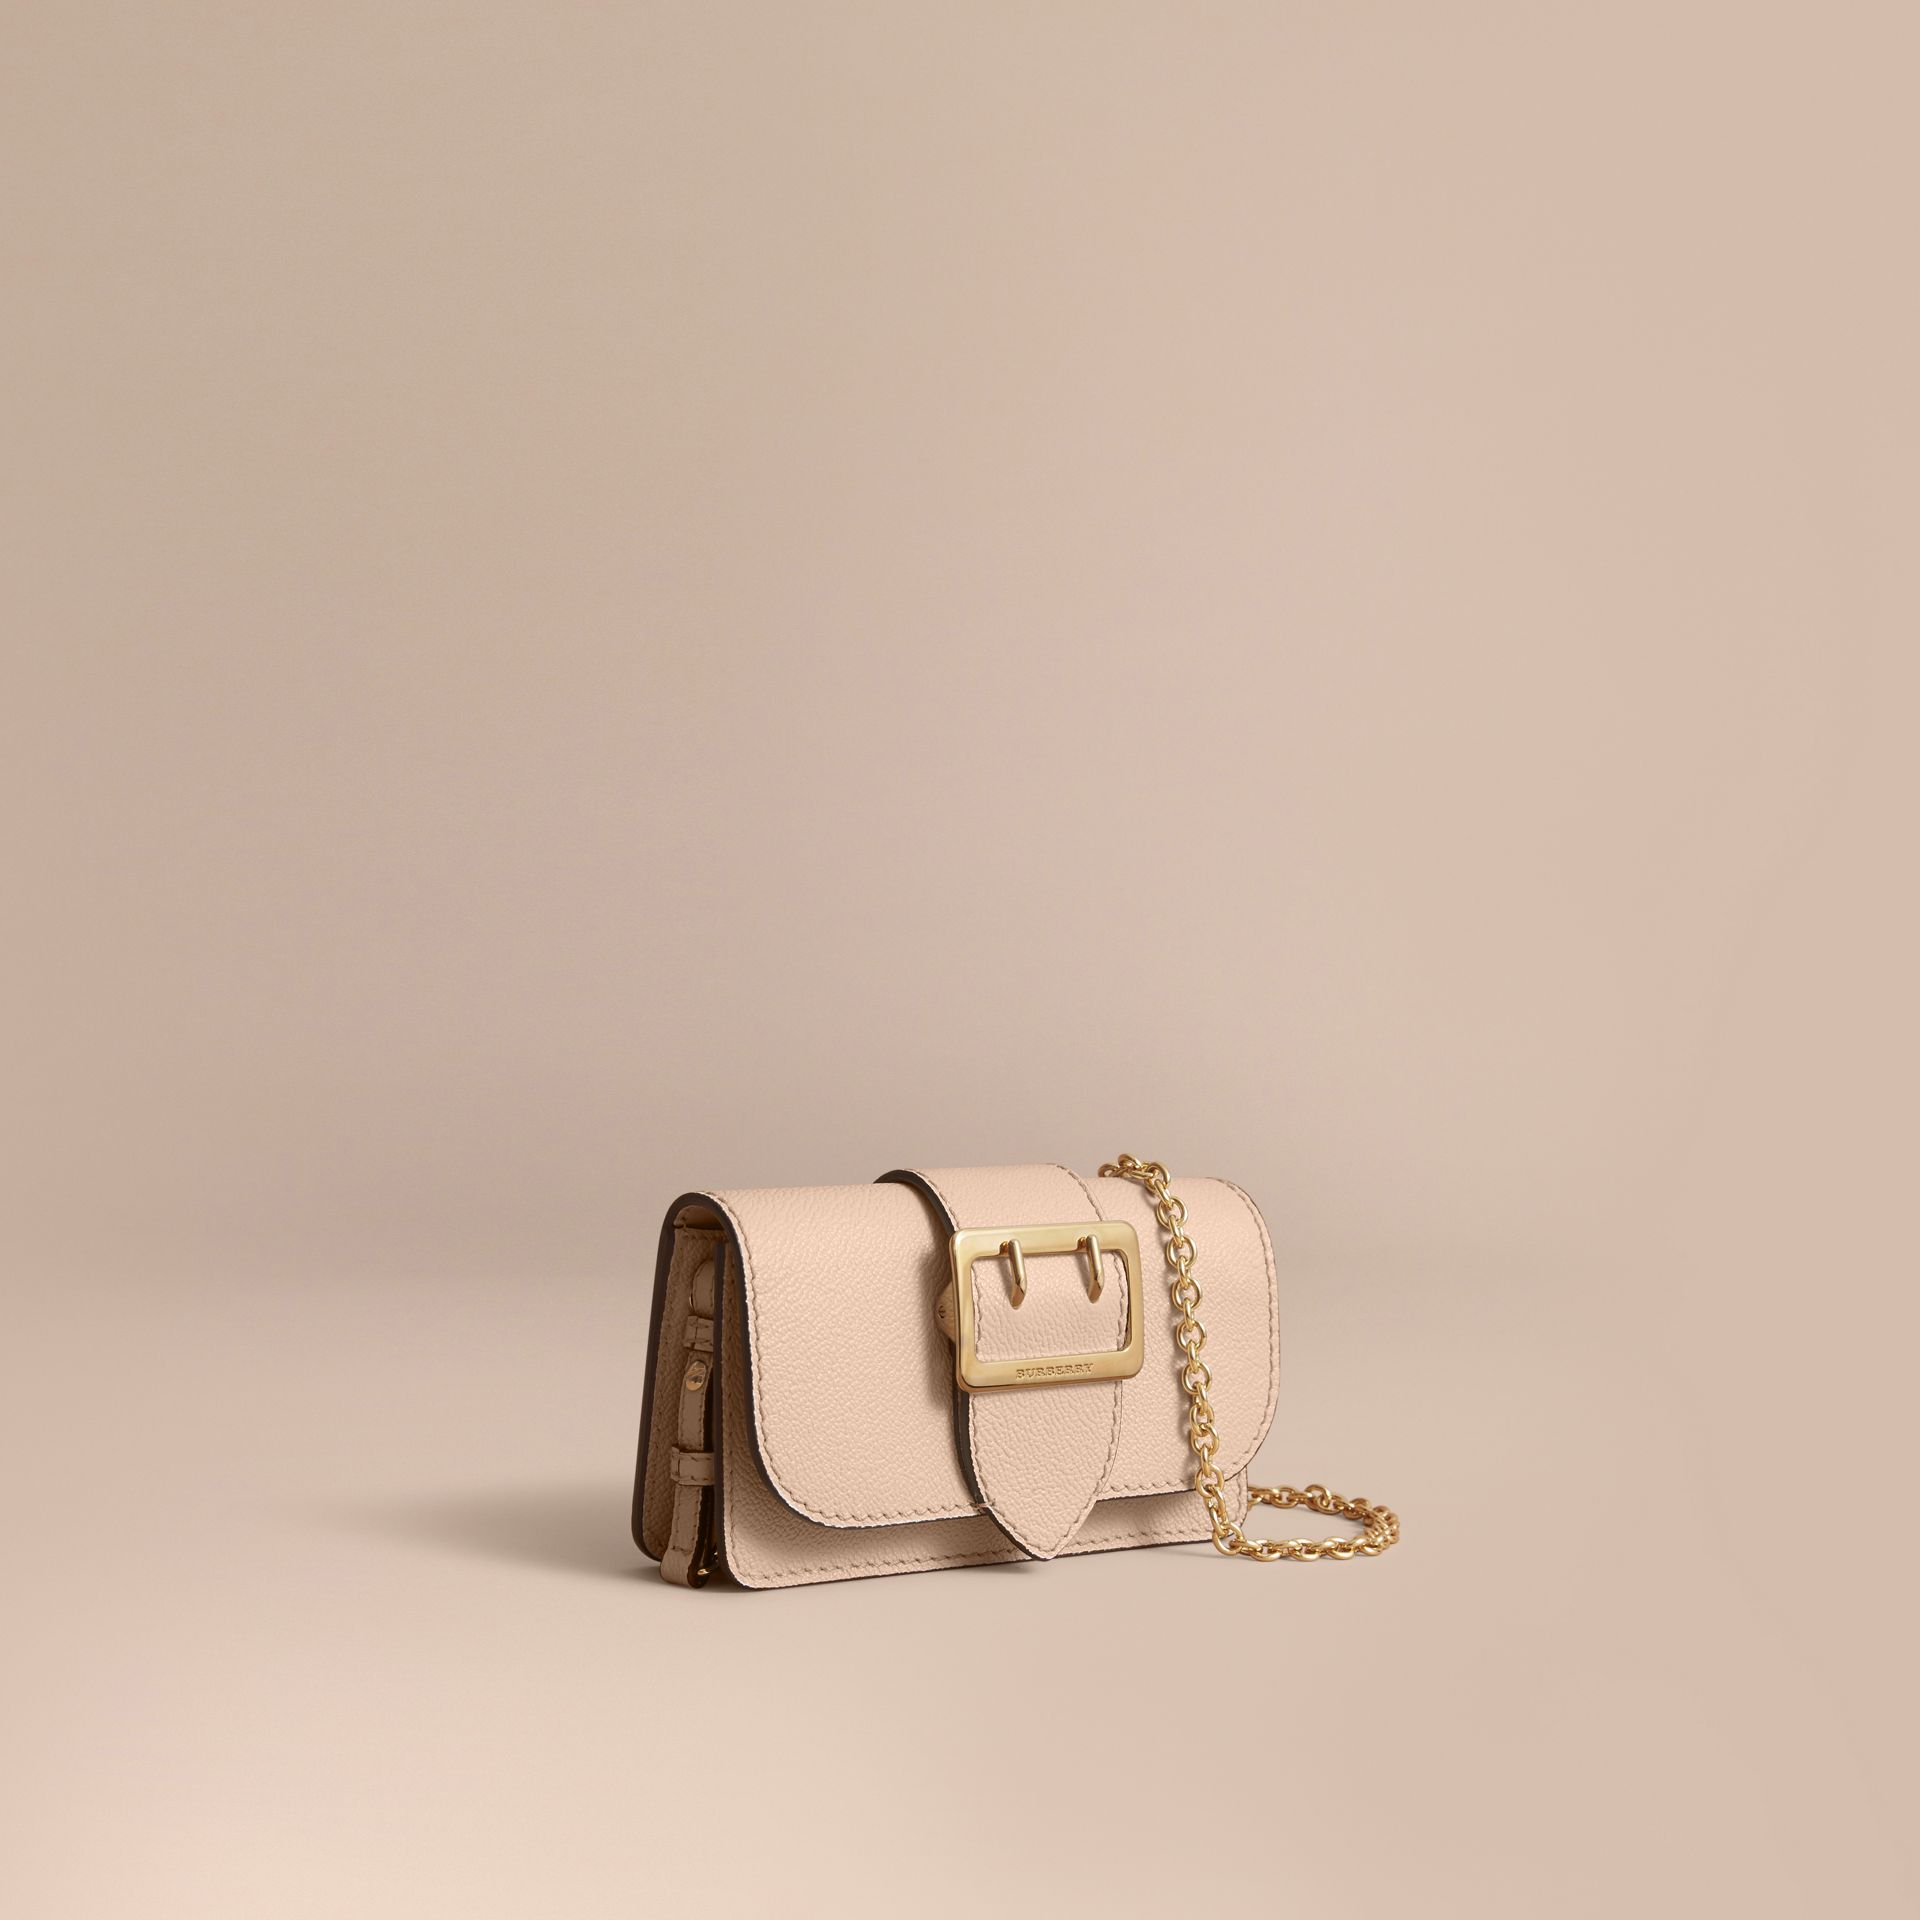 The Mini Buckle Bag in Grainy Leather in Limestone - Women | Burberry - gallery image 1